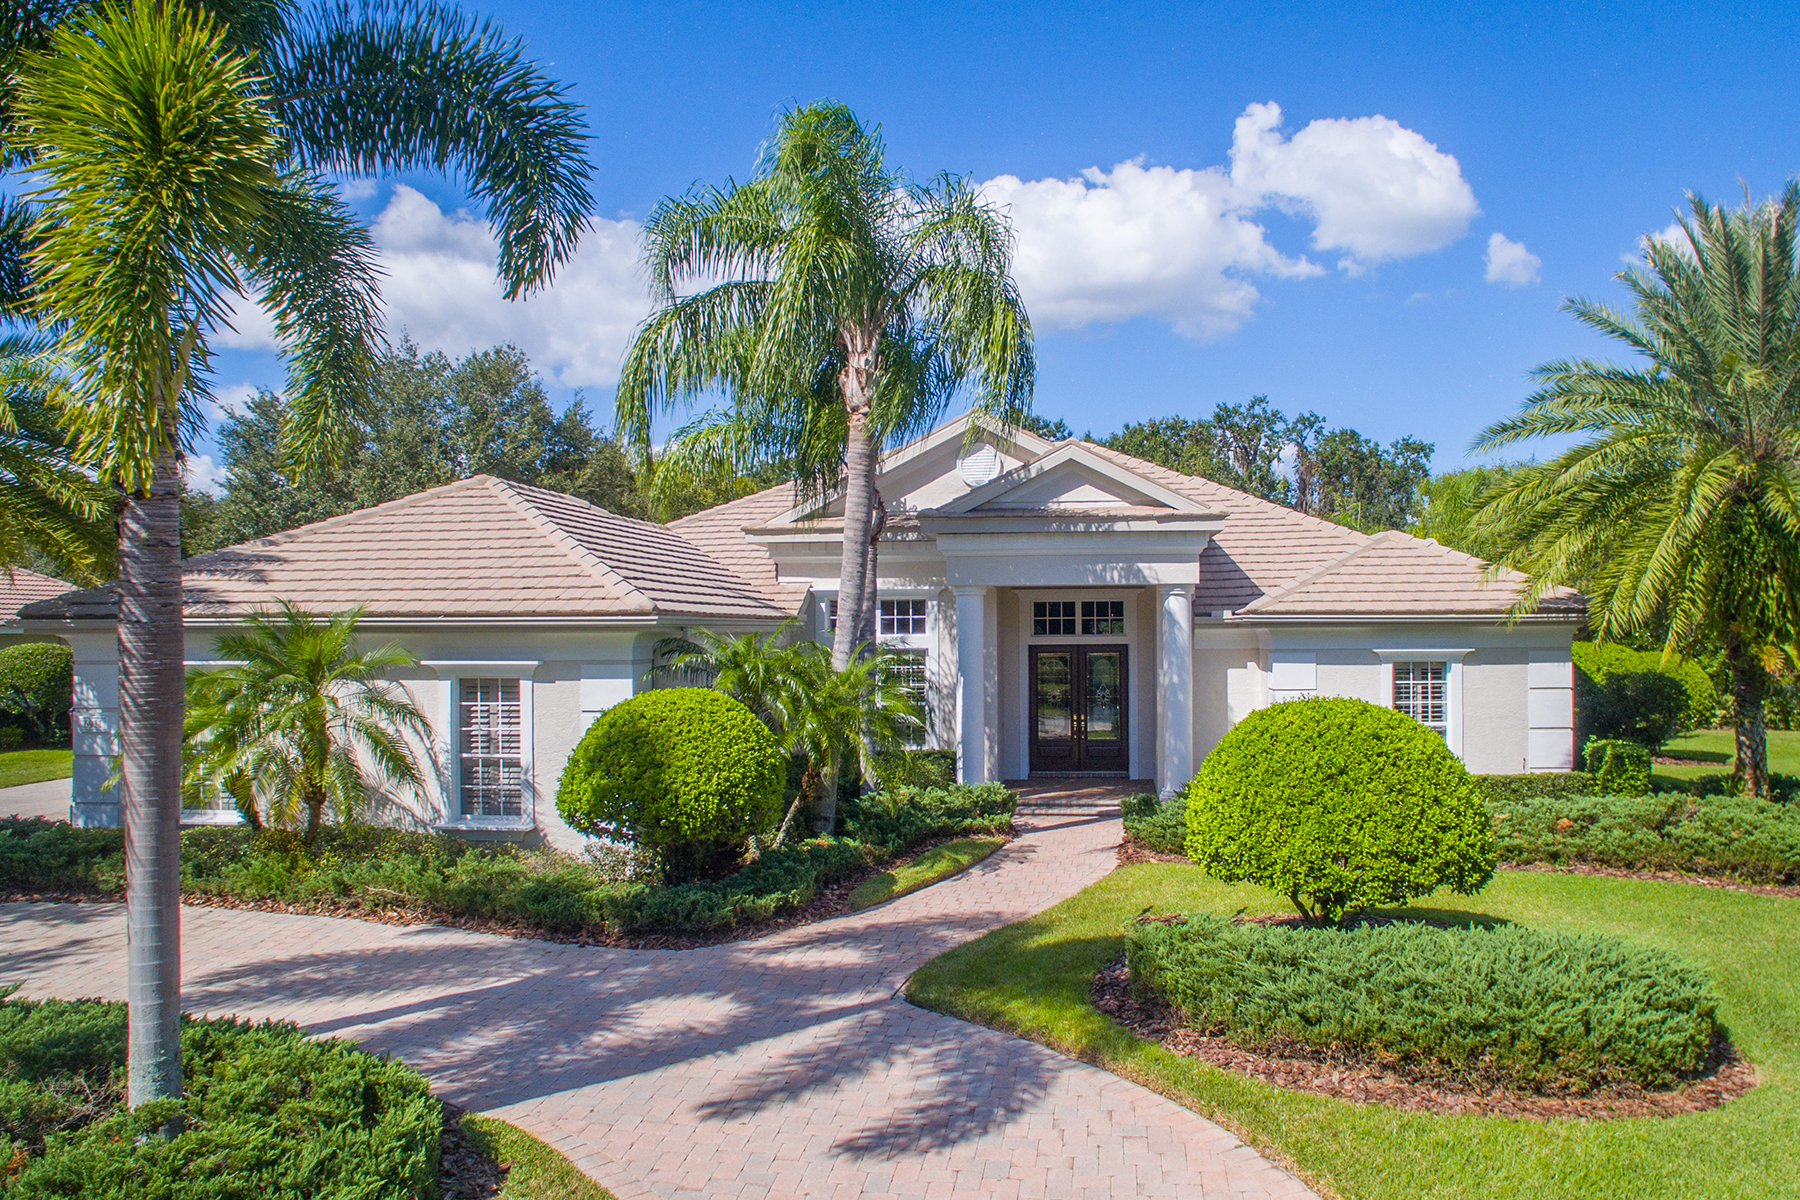 Casa Unifamiliar por un Venta en LAKEWOOD RANCH COUNTRY CLUB 6911 Winners Cir Lakewood Ranch, Florida, 34202 Estados Unidos